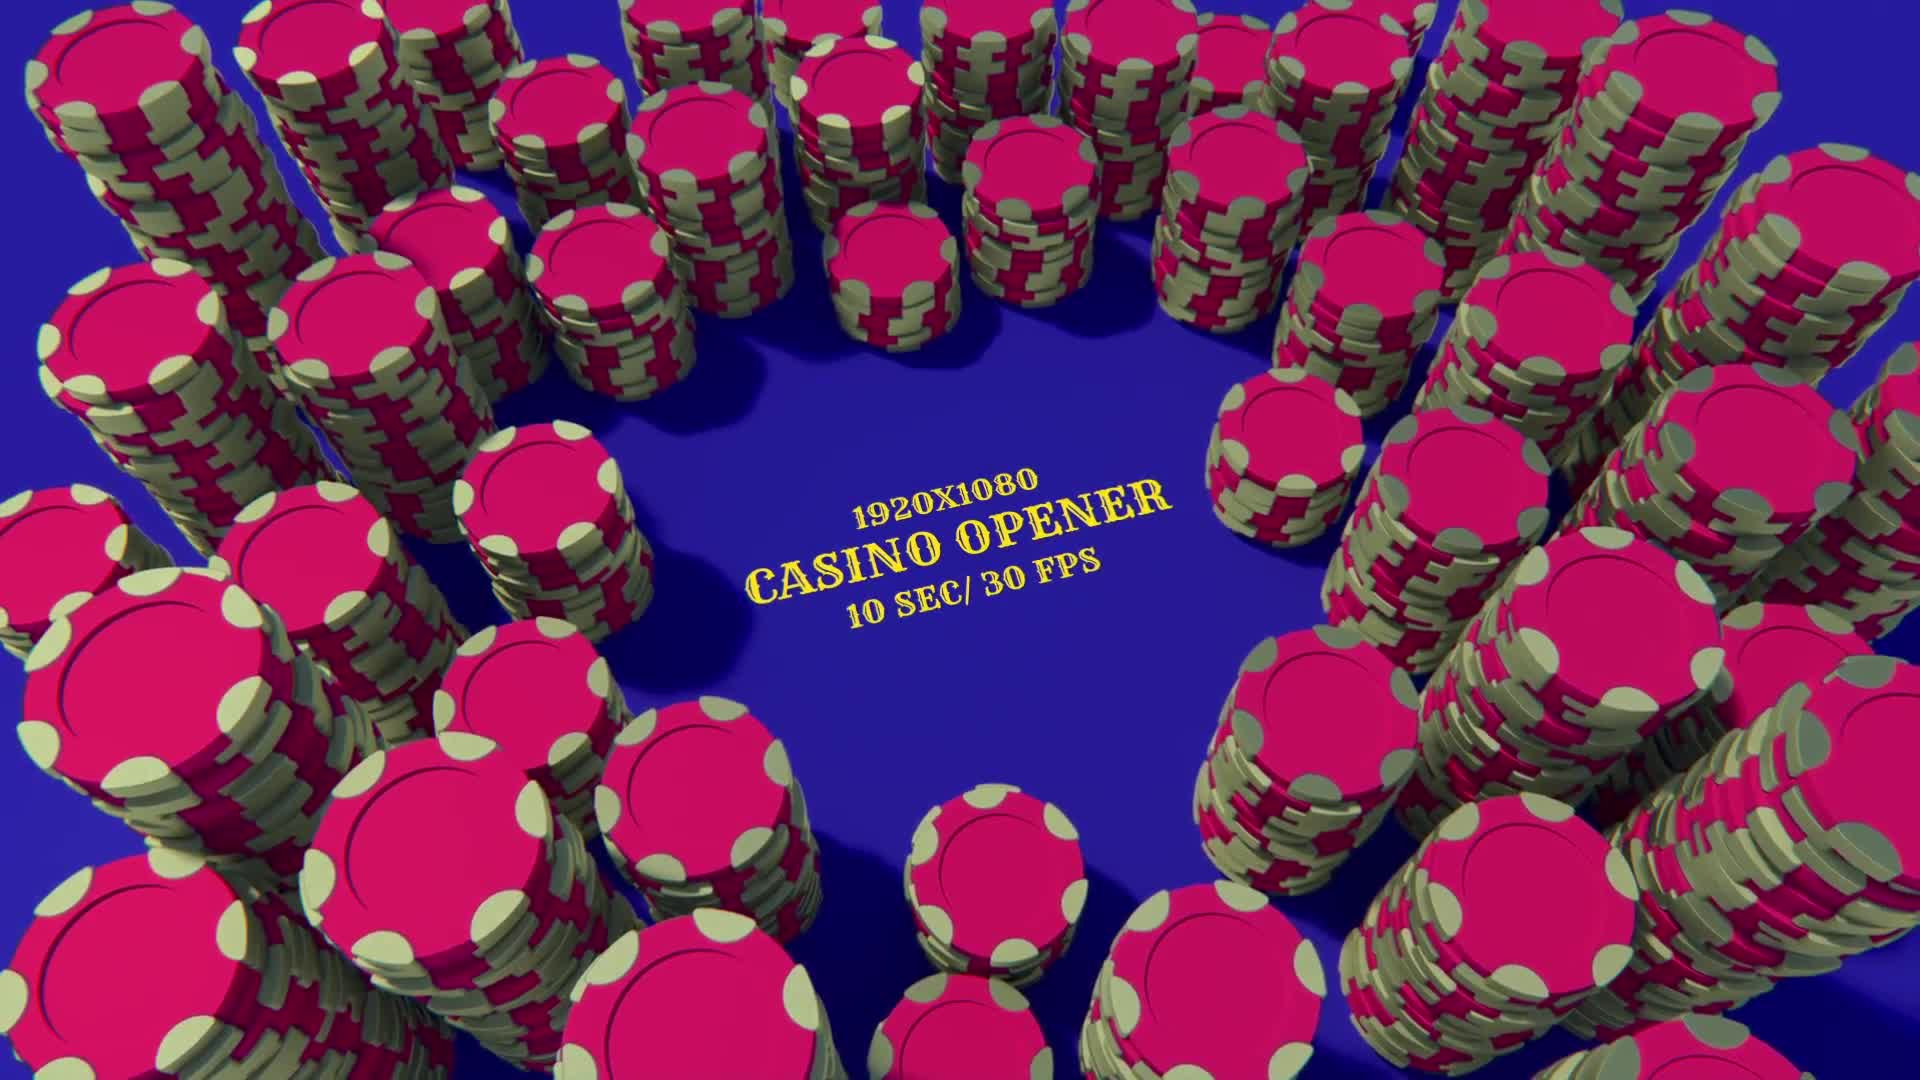 Casino Games/ Poker Champions/ Online Game Roulette Intro/ Slot Machine/ Profit Big Money Win/ Chips Videohive 26379985 After Effects Image 8